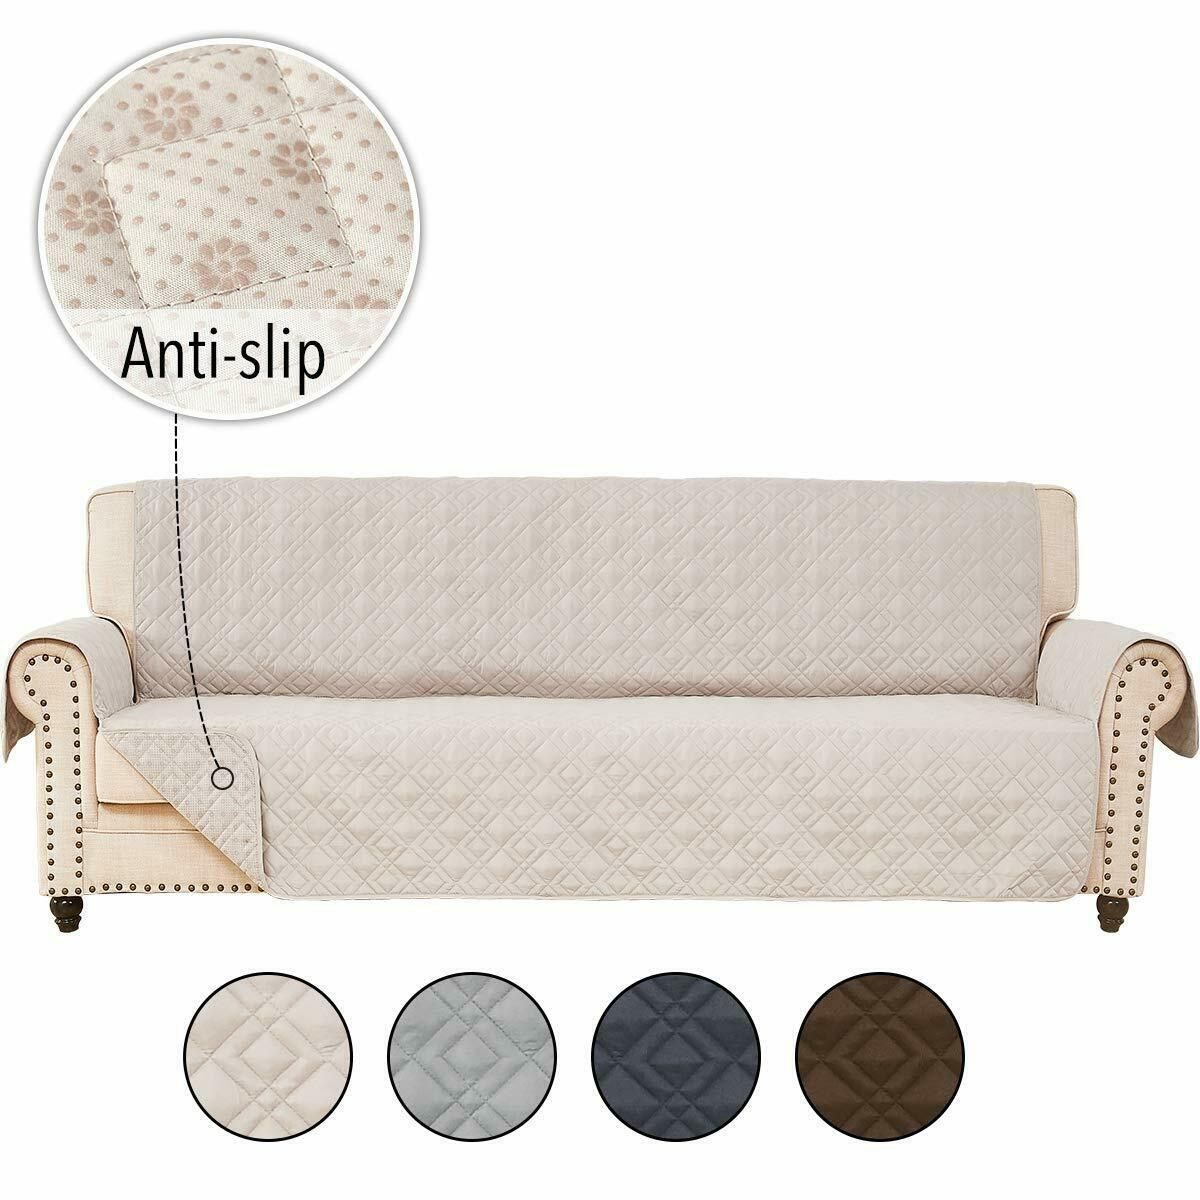 Anti Slip Chair Seat For Leather Sofa Couch Slipcover Pet Covers Furniture Prote 21 99 Lounge Seating In 2020 Leather Sofa Couch Slip Covers Couch Washable Sofa